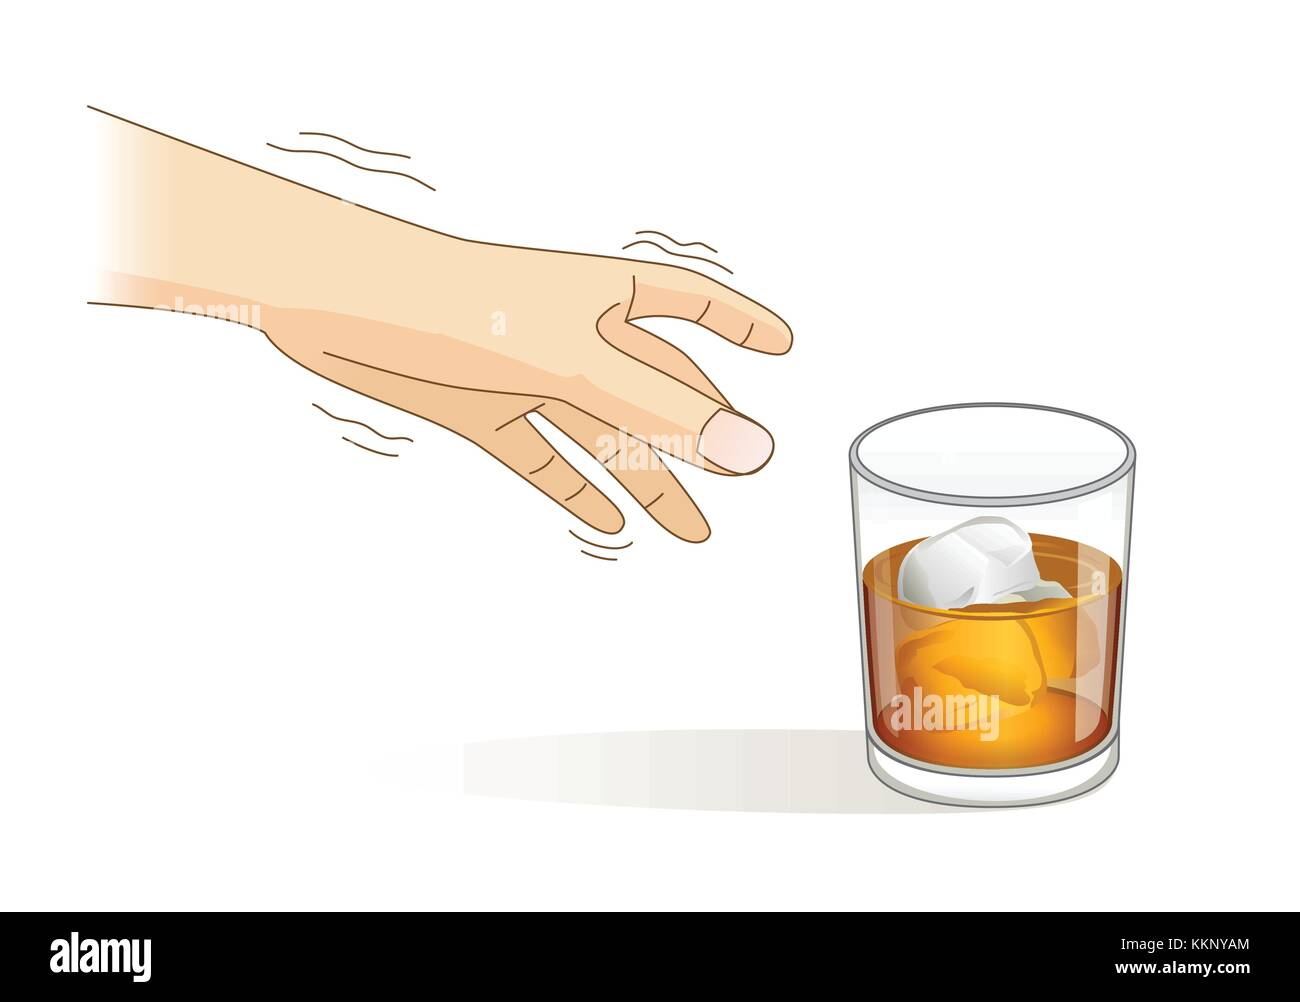 A Hand have tremor symptom while reaching for a glass of liqueur. - Stock Image